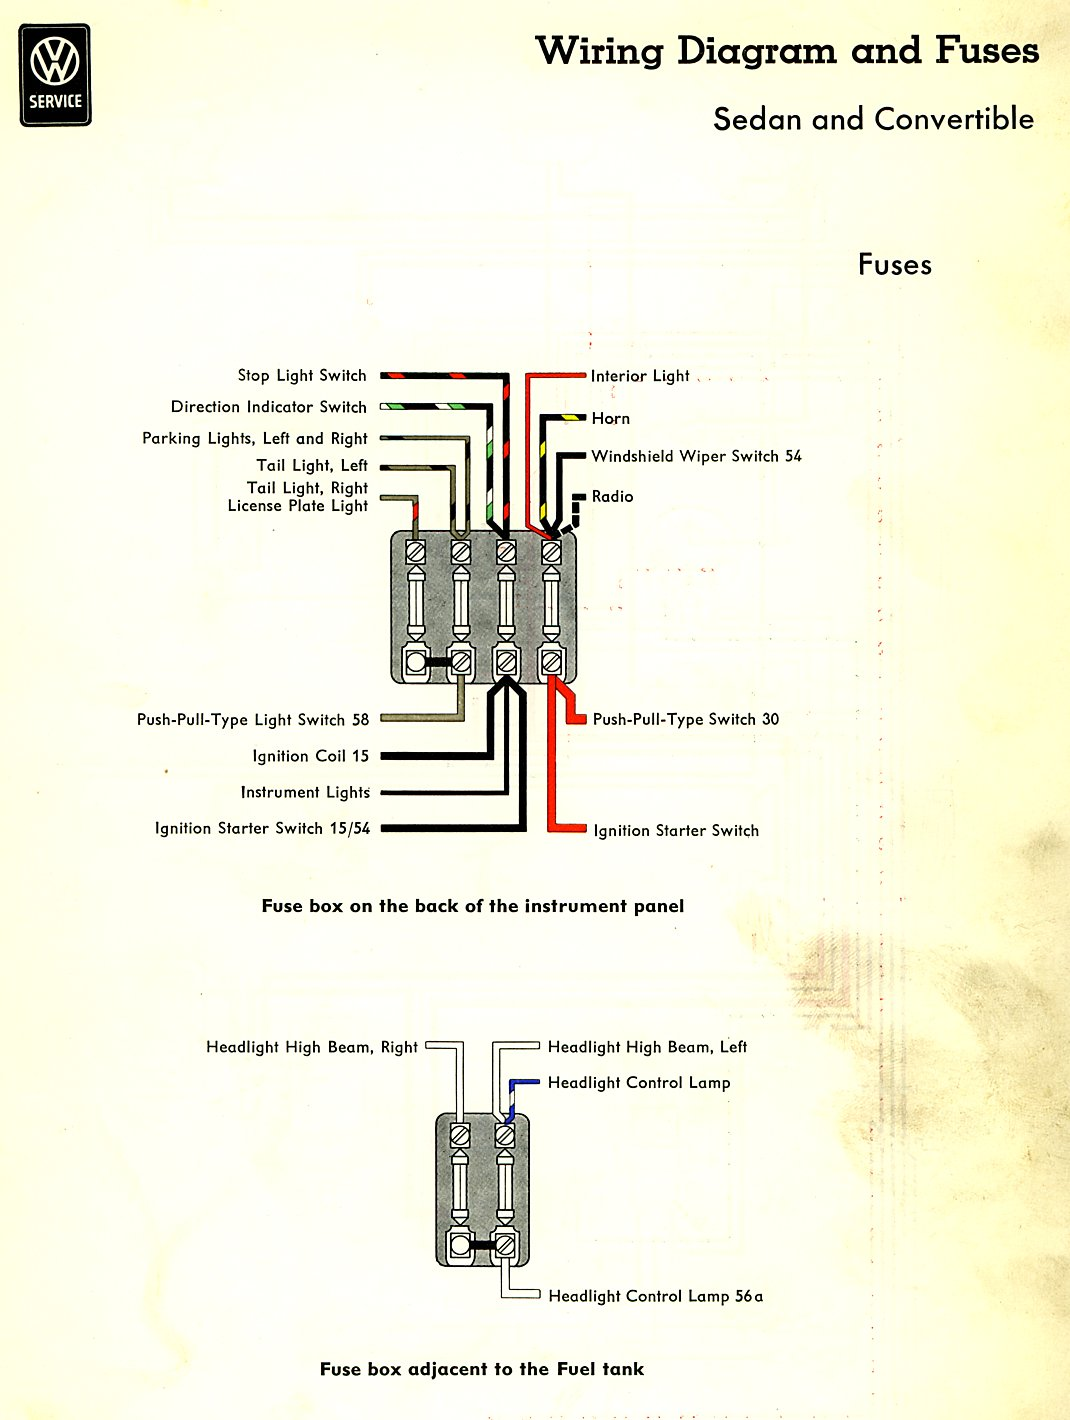 WRG-7297] Air Cooled Vw Wiring Diagram Horn on